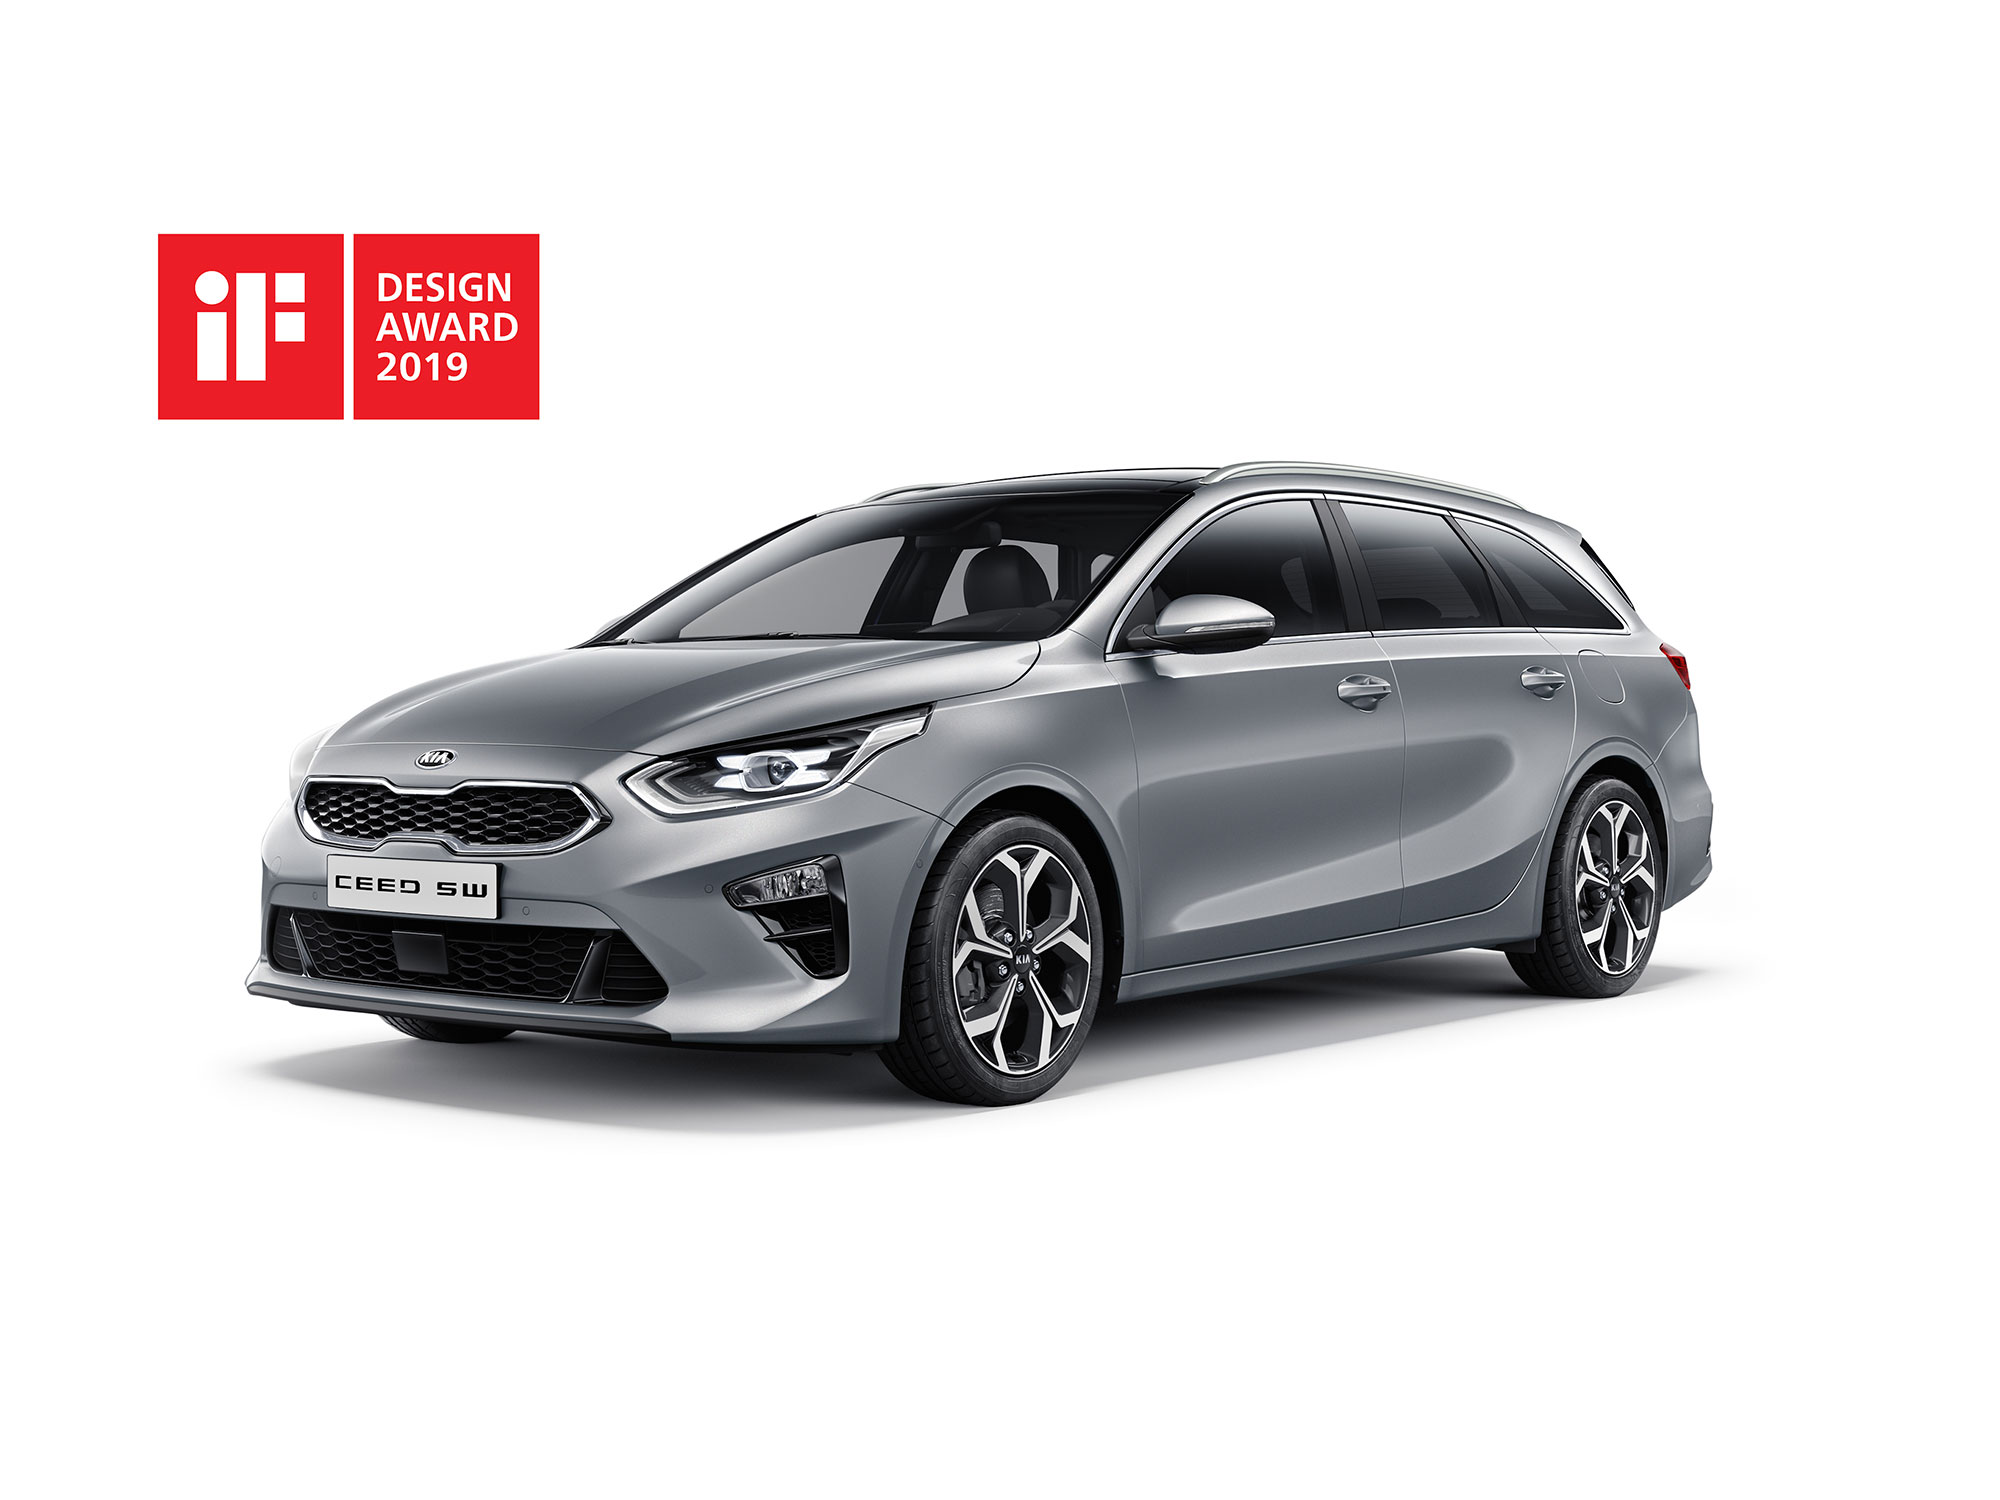 KIA Ceed iF Design Award 4